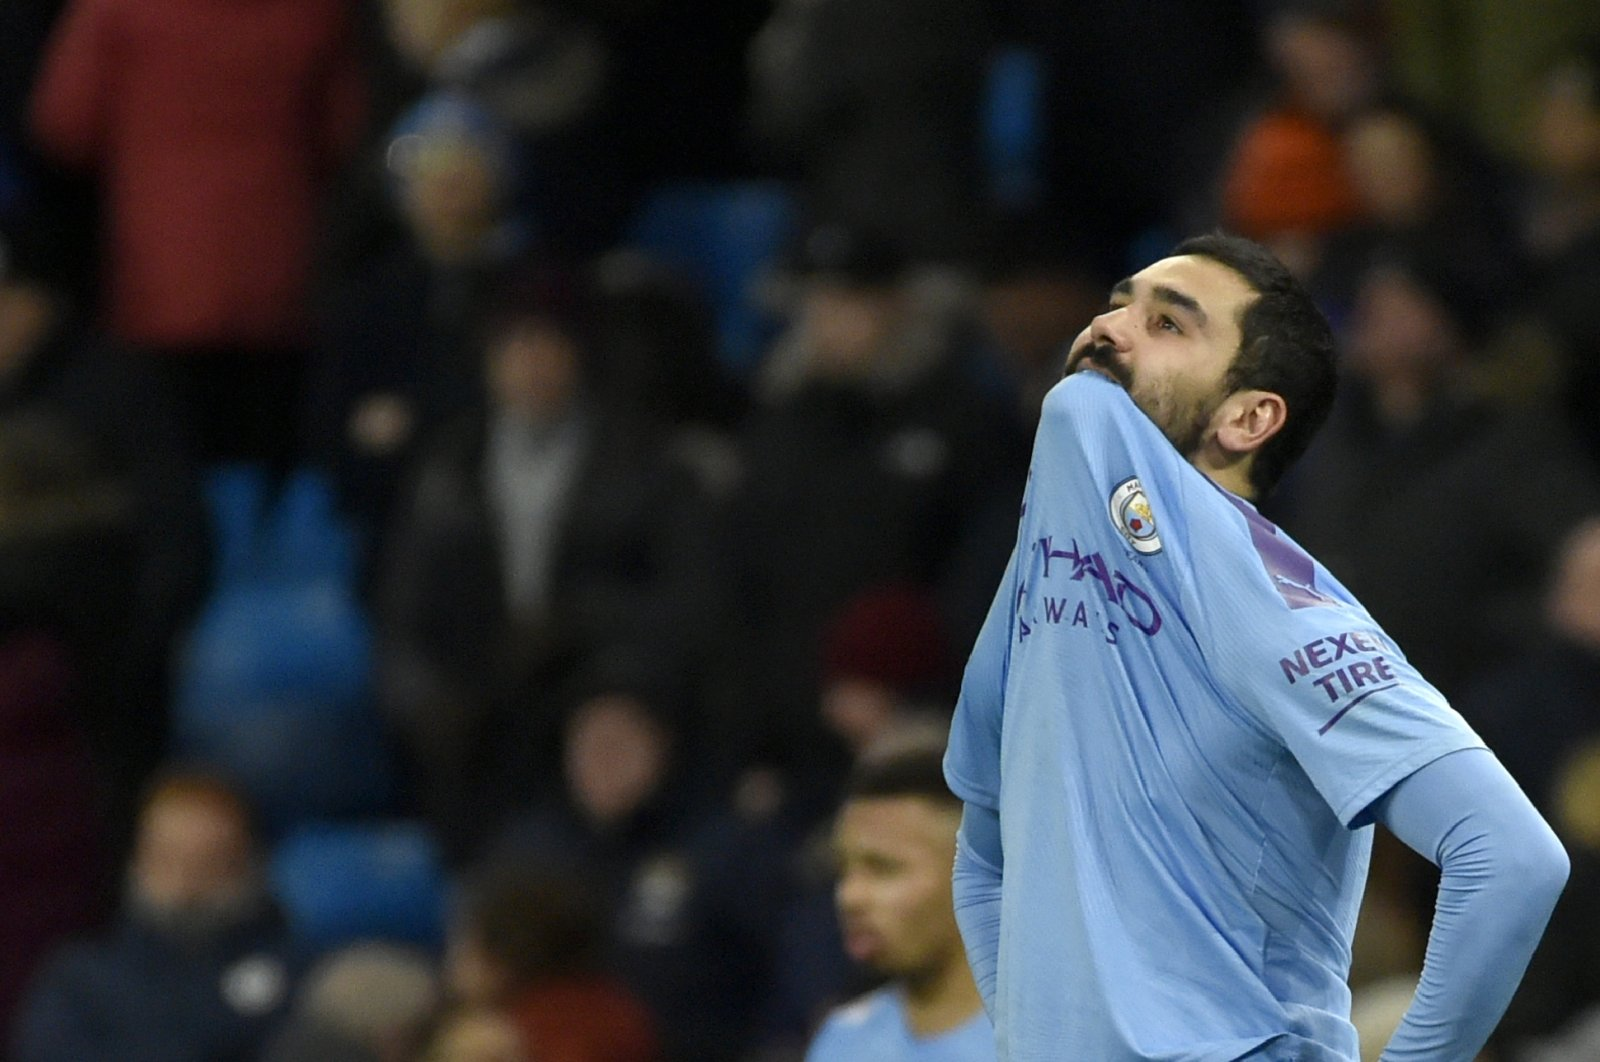 Manchester City's Ilkay Gündoğan reacts at the end of a Premier League match against Crystal Palace, in Manchester, England, Jan. 18, 2020. (AP Photo)